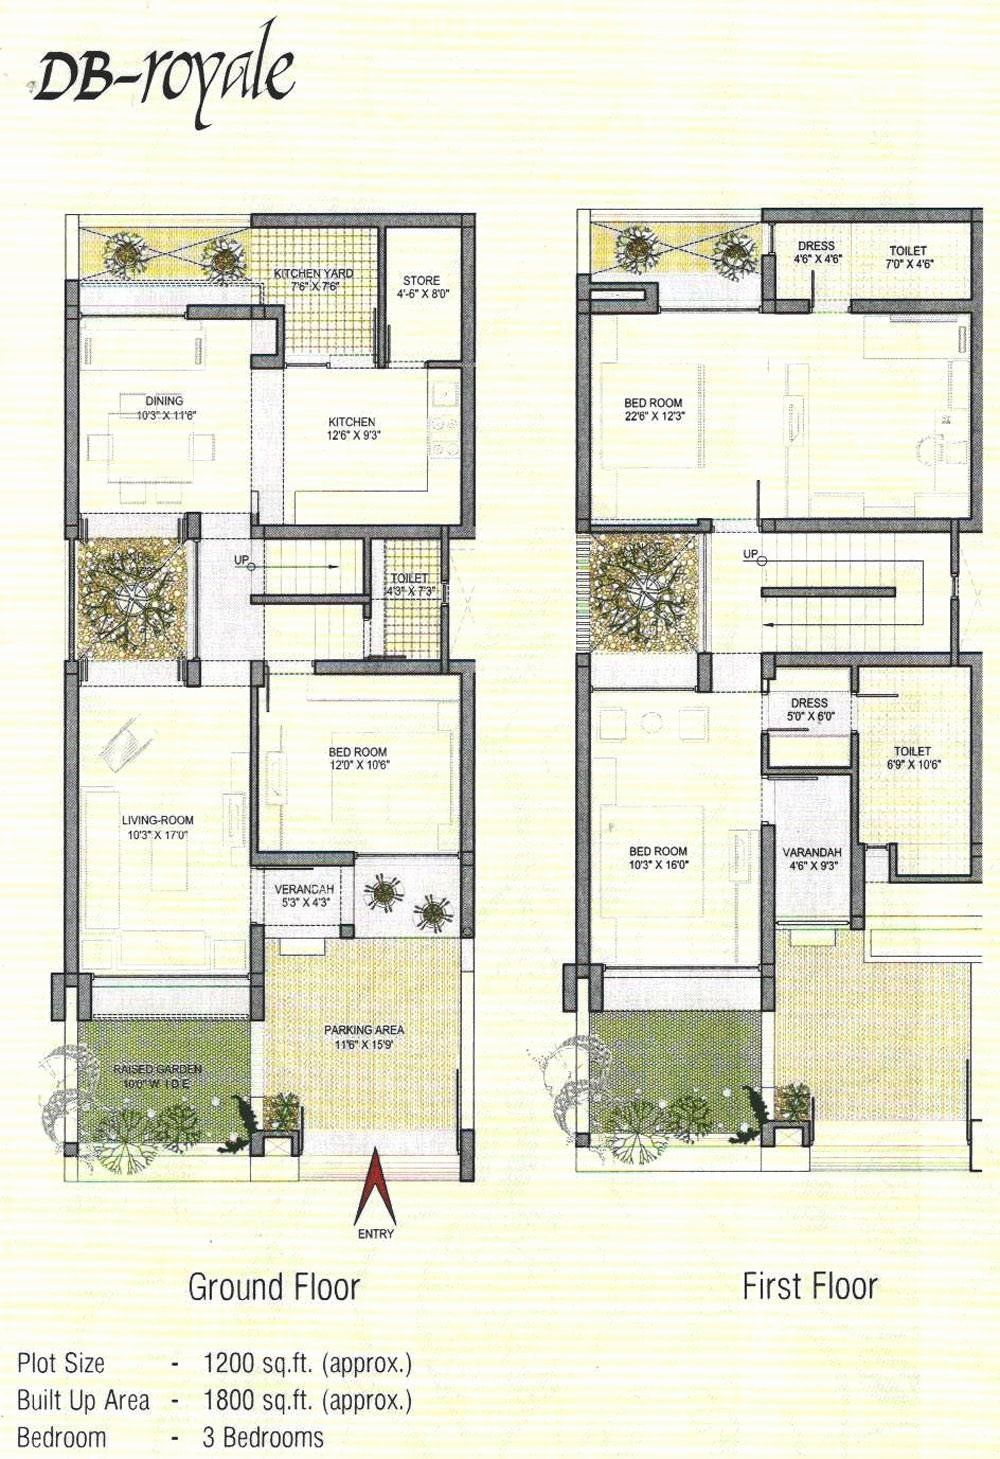 750 Sf House Plans Lovely House Plans Indian Style 600 Sq Ft Best 1000 Sq Ft House In 2020 Indian House Plans Duplex House Plans Modern House Plans